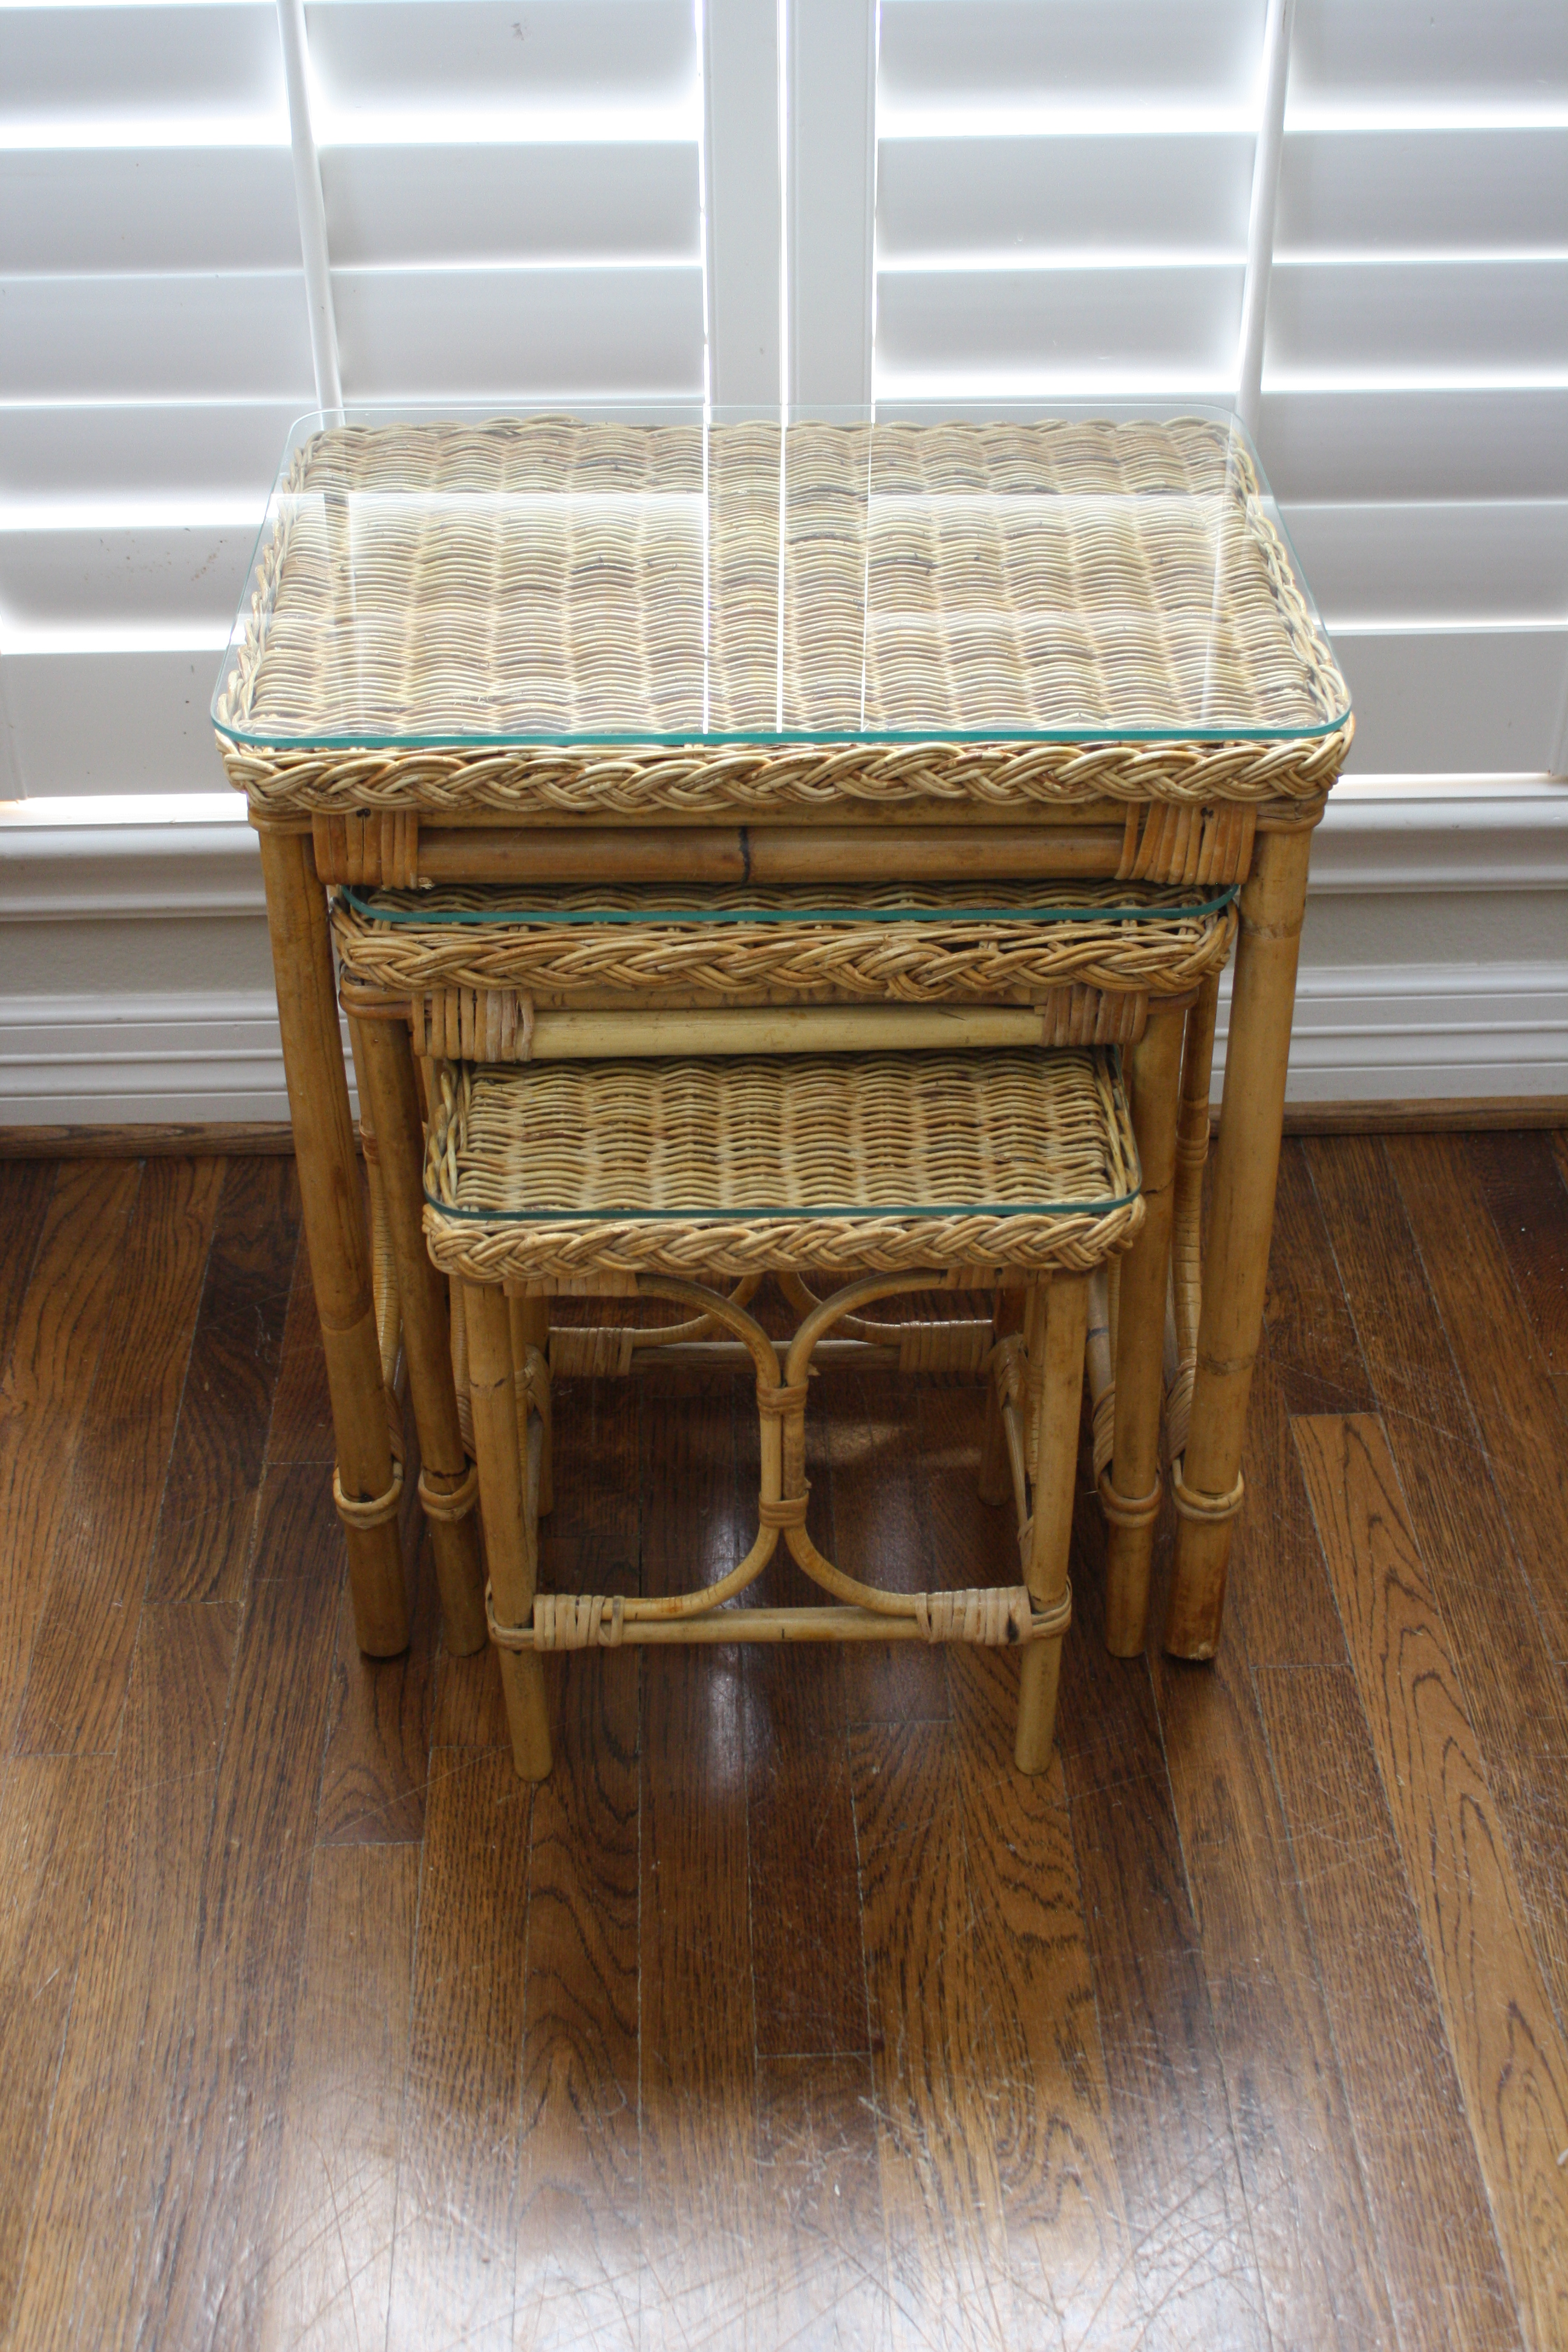 Vintage Bamboo U0026 Rattan Nesting Tables   Set Of 3   Image 2 ...